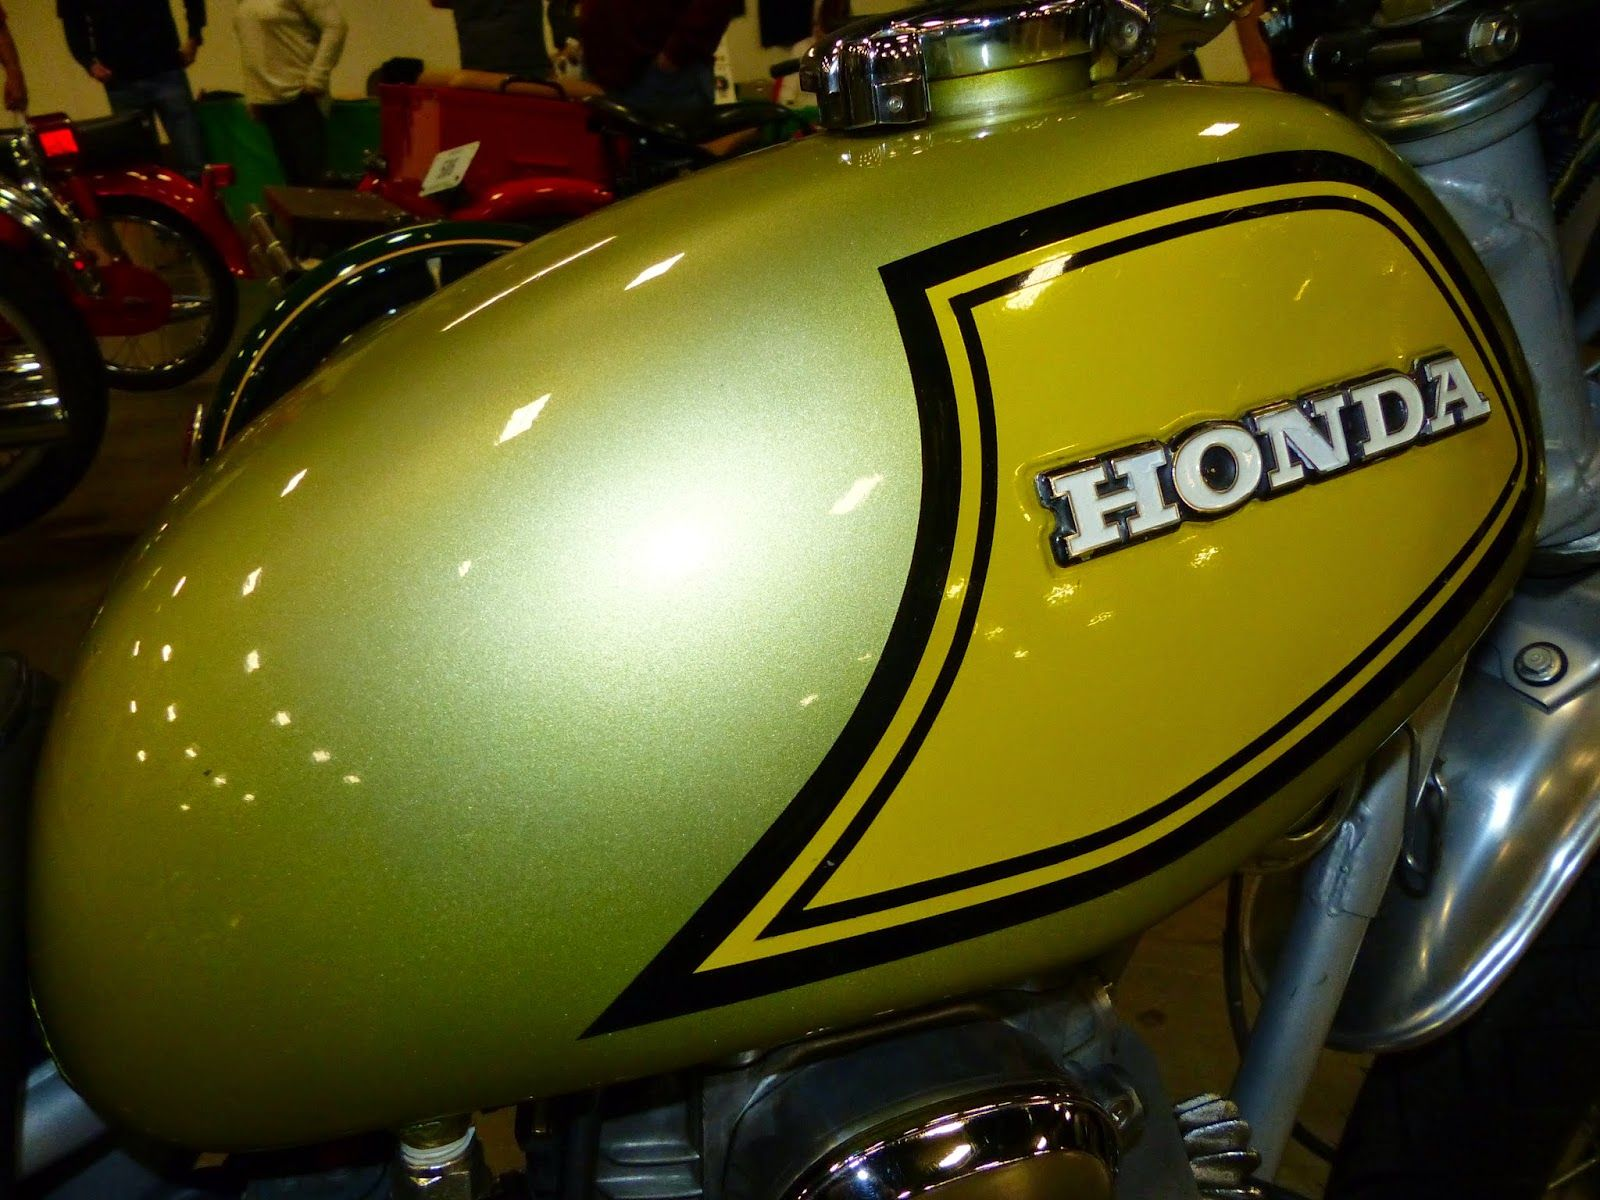 1973 Honda SL350 on display at the 2015 Idaho Vintage